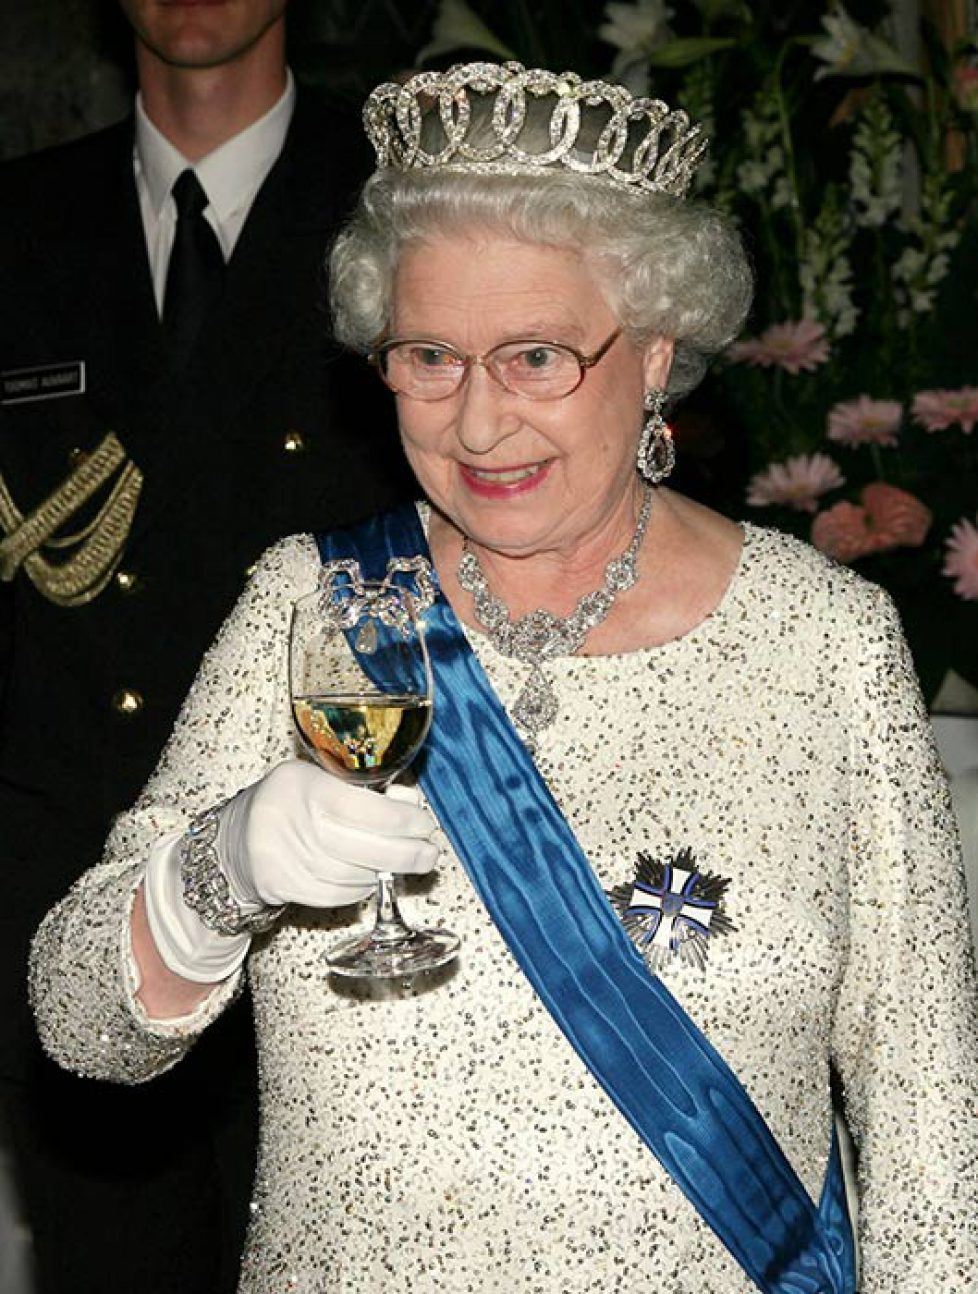 The-Queen-toast-a